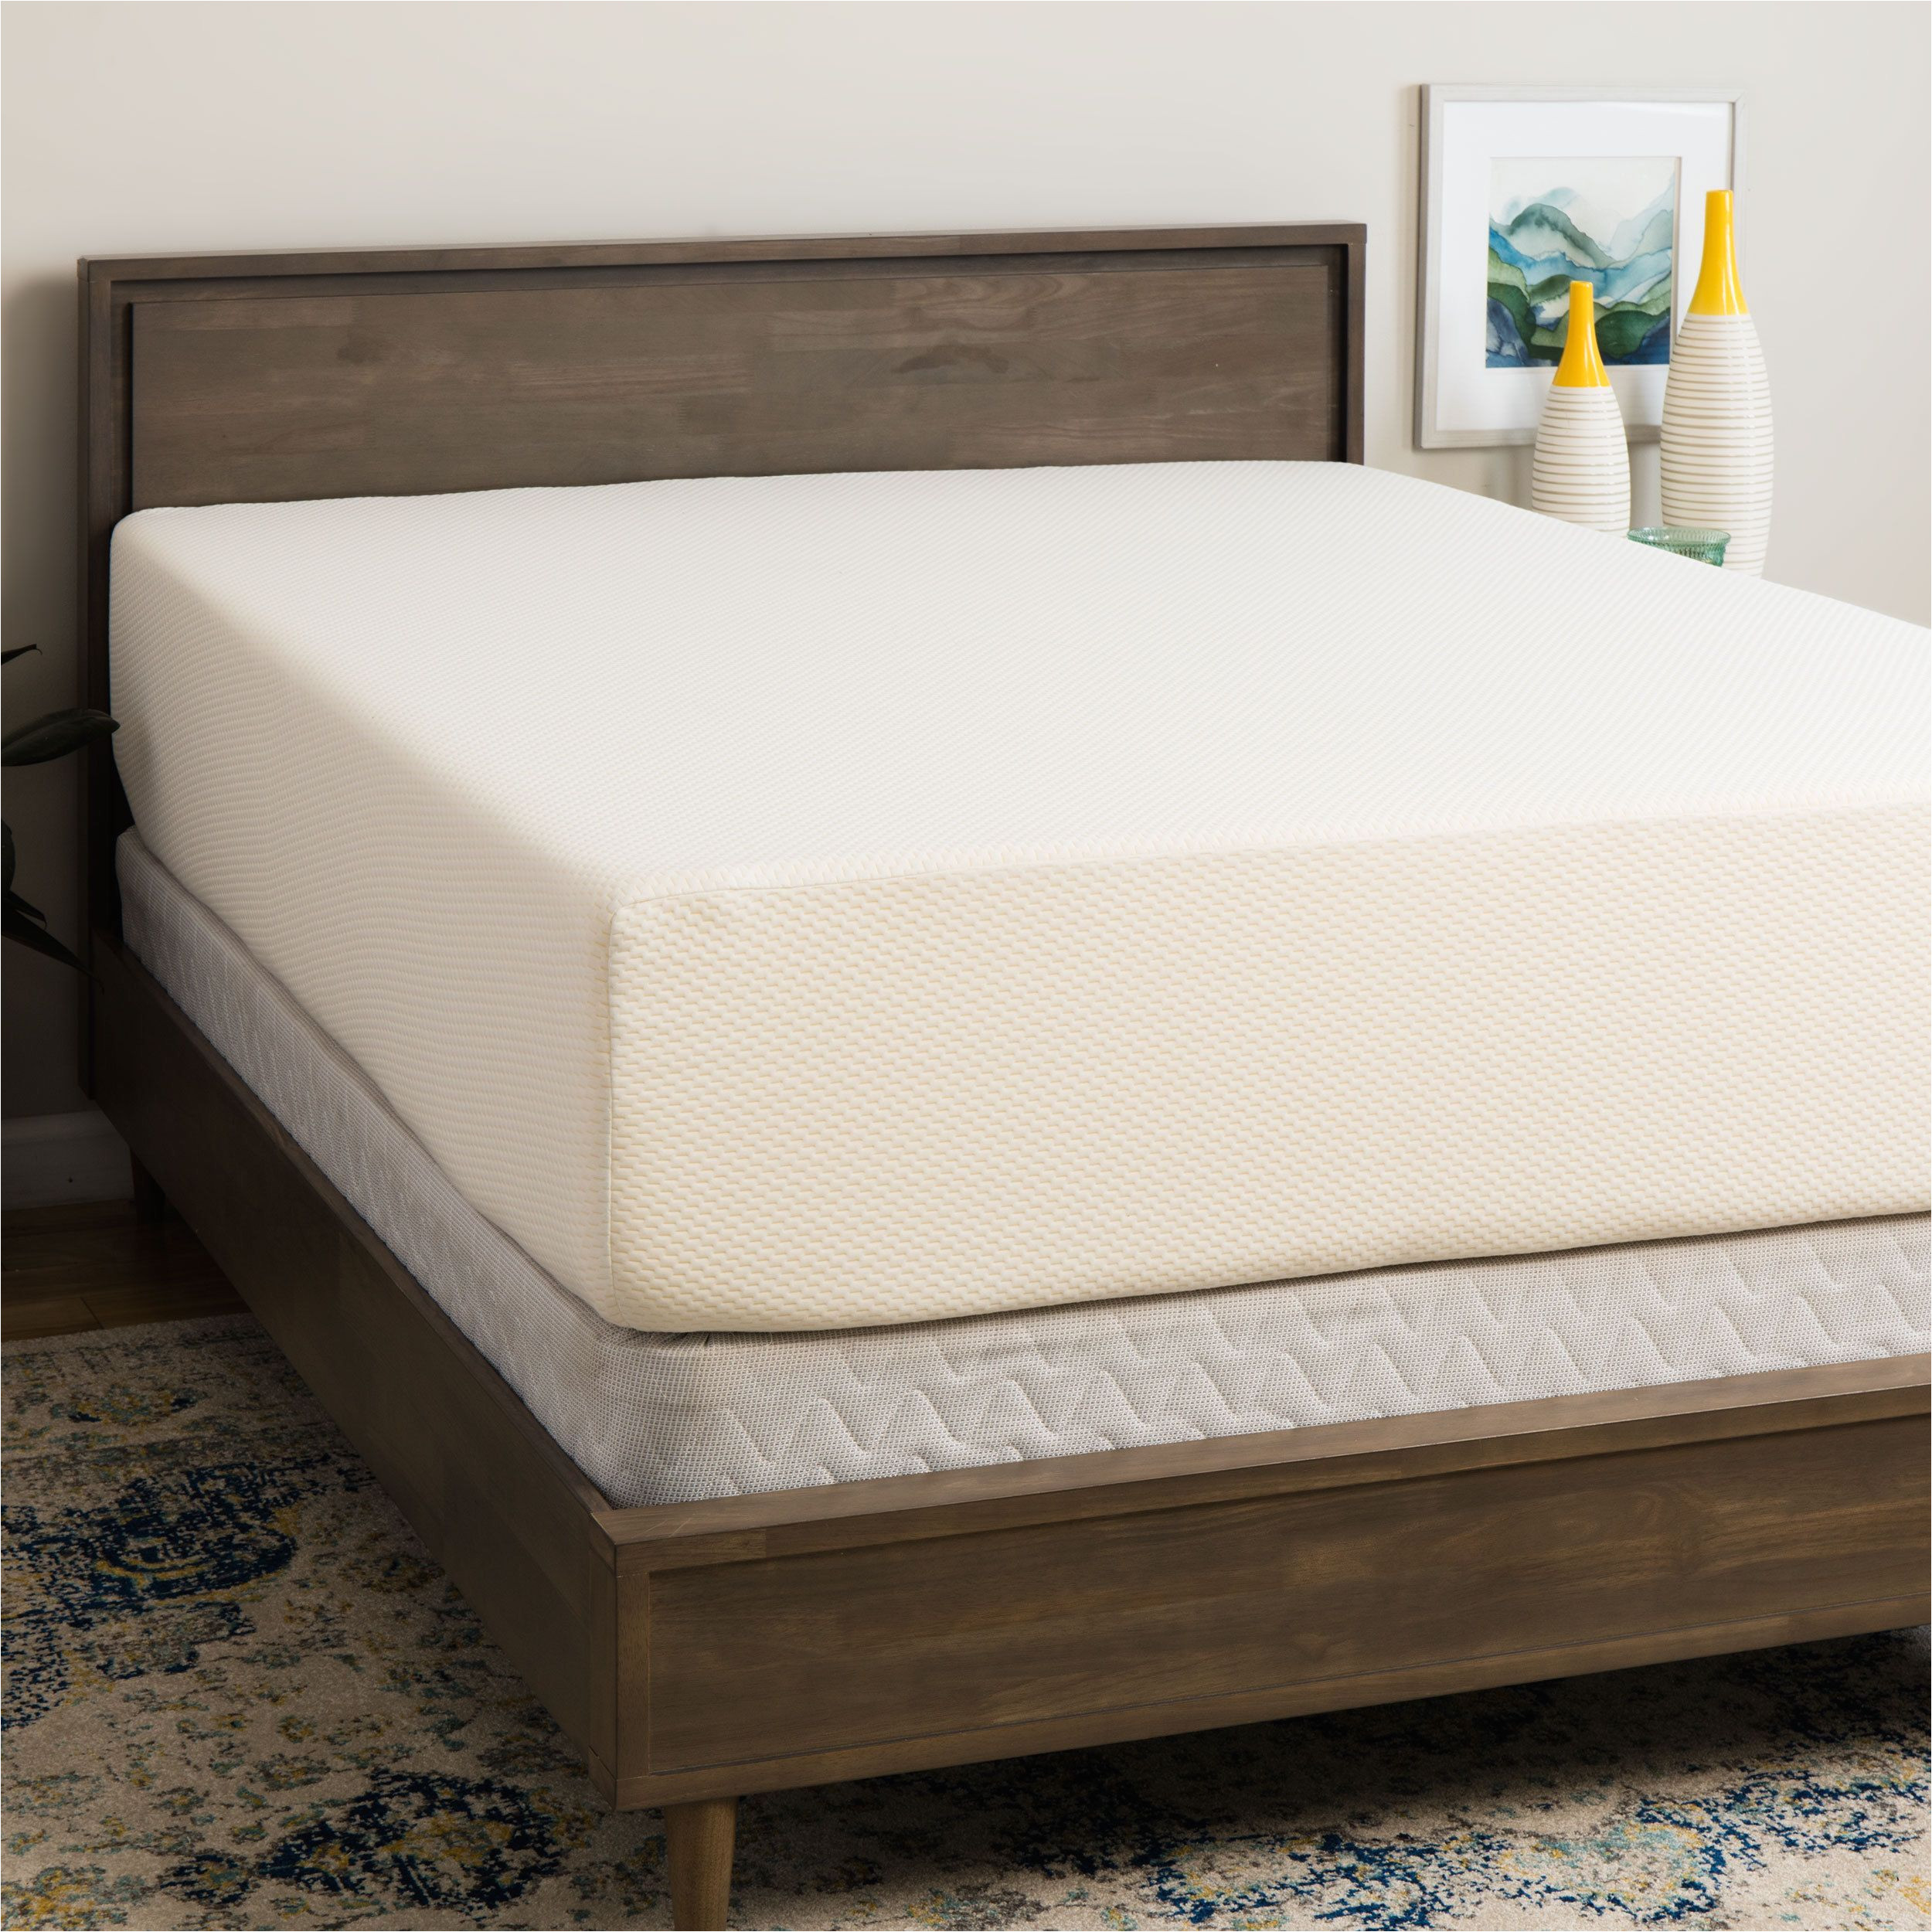 select luxury medium firm 14 inch king size memory foam mattress and foundation set select luxury medium firm 14 inch king size set blue waterfall